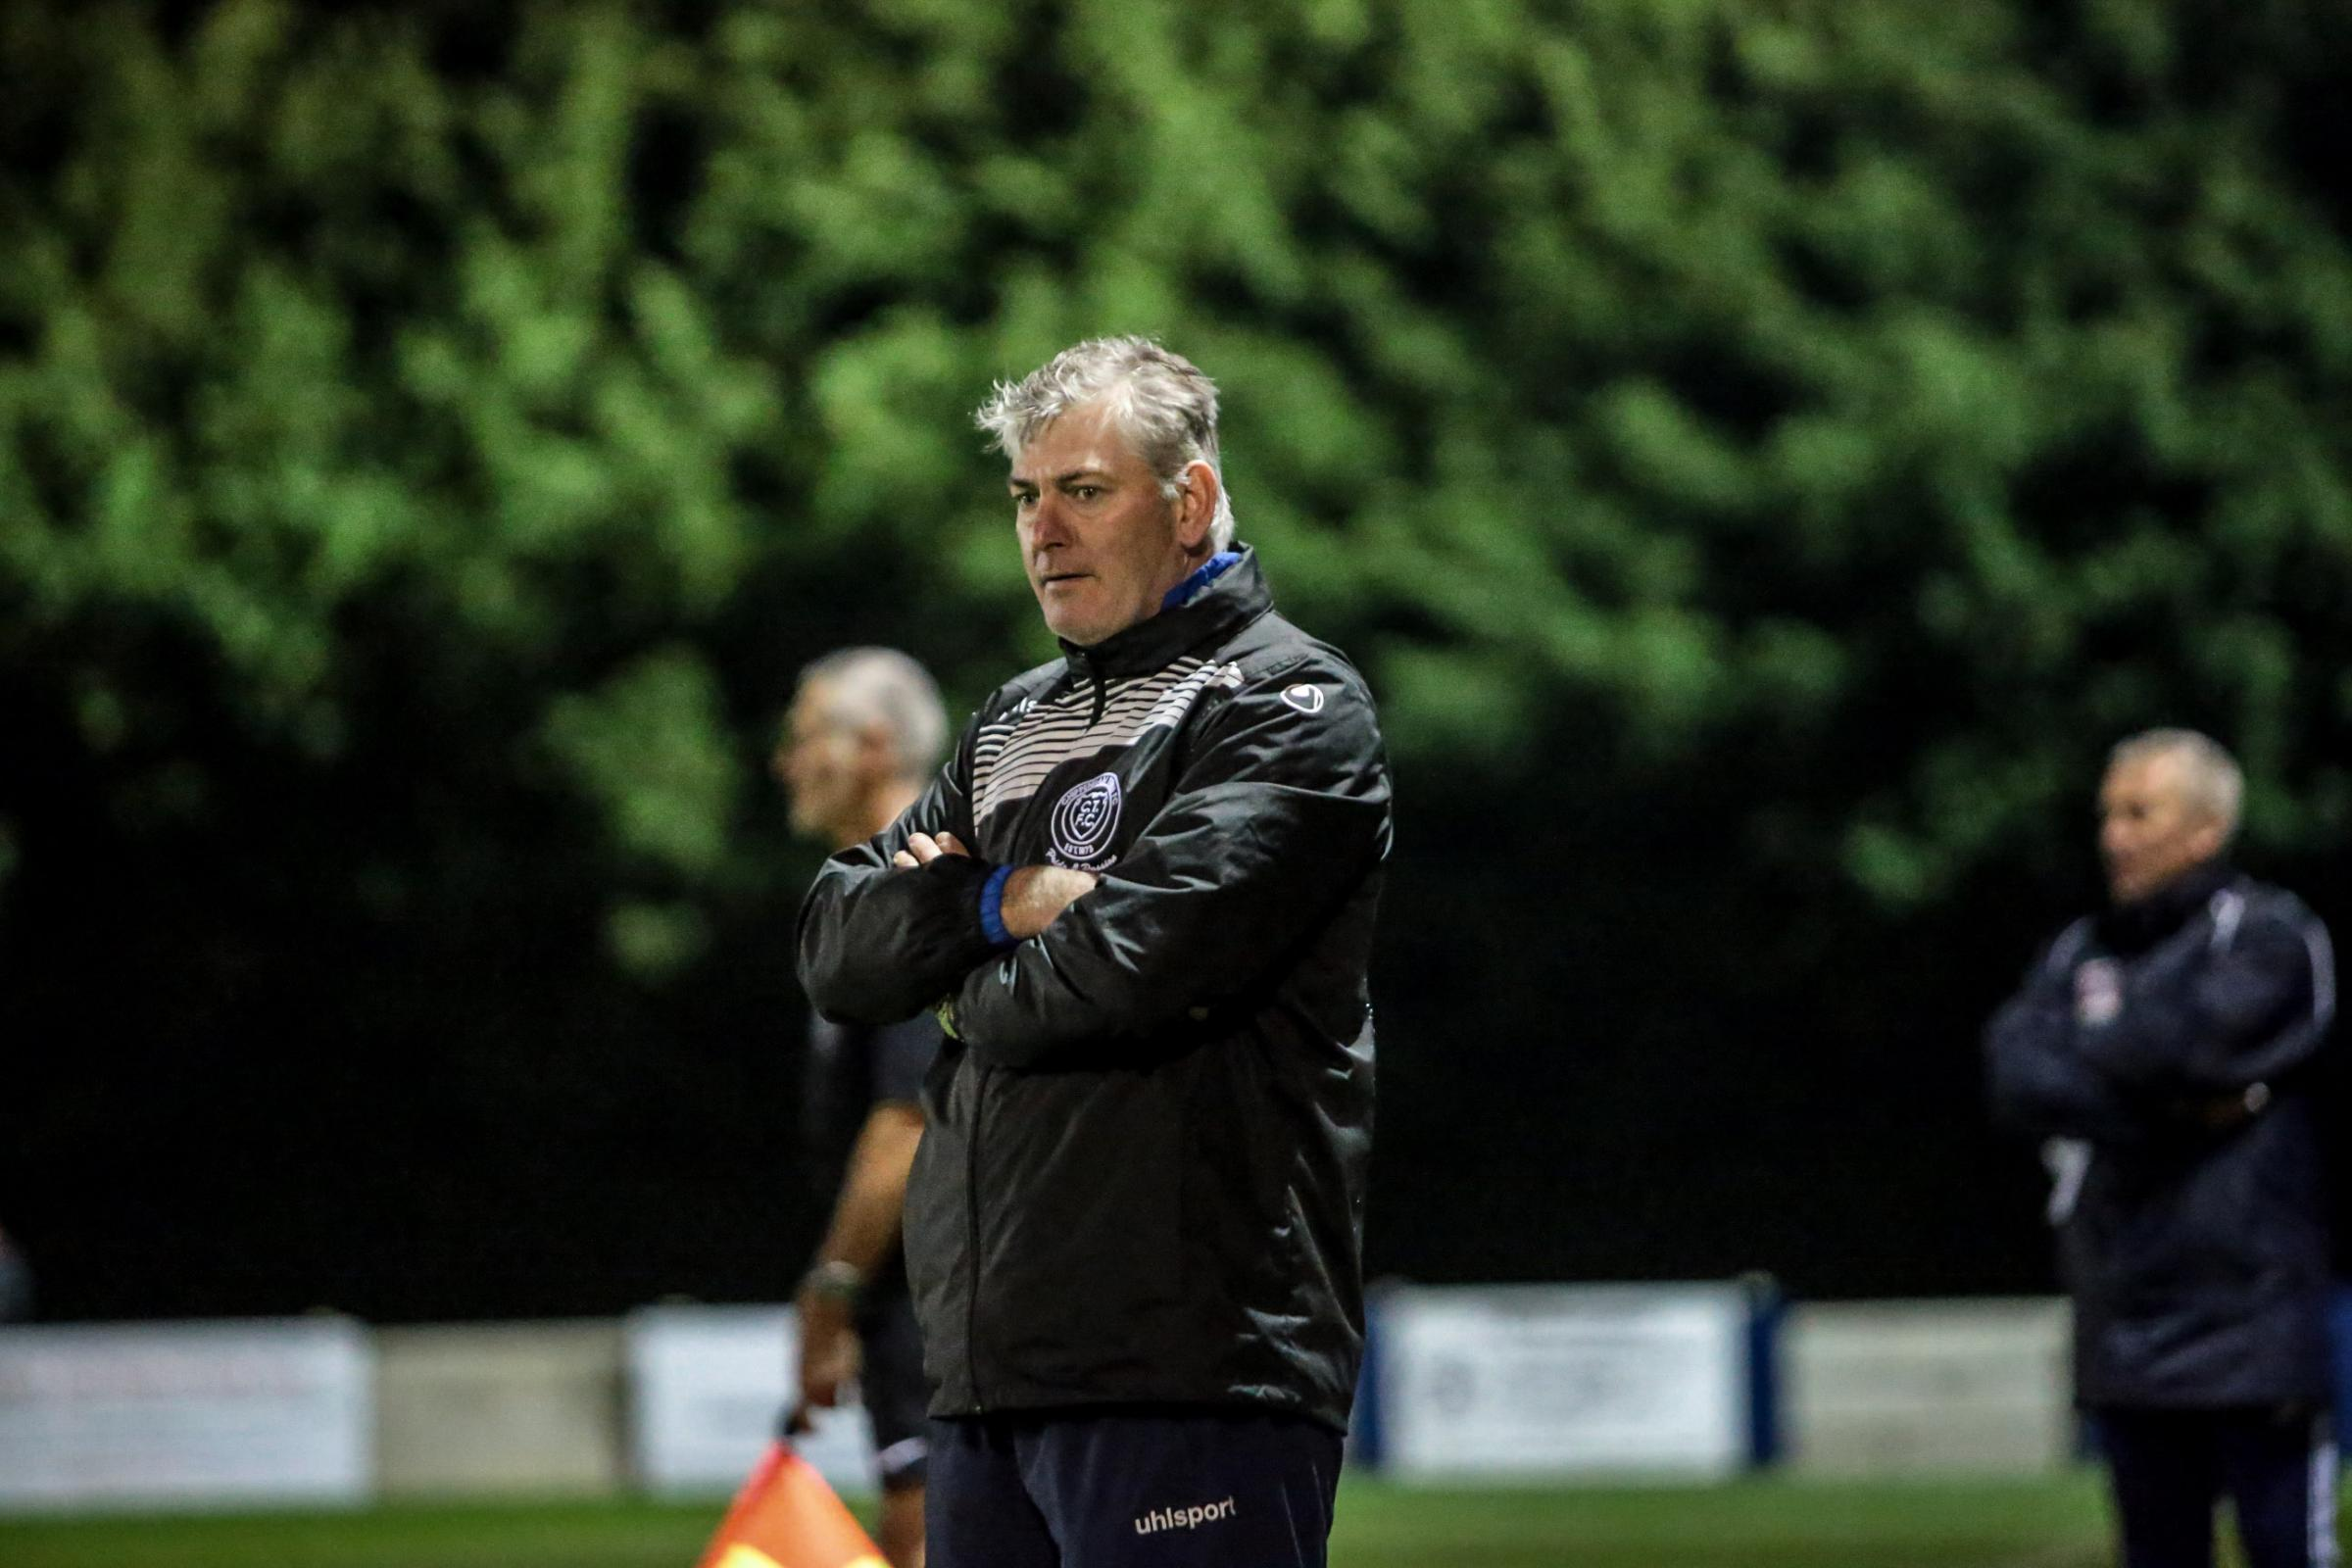 Tom Jones has left his position as Chippenham Town assistant manager